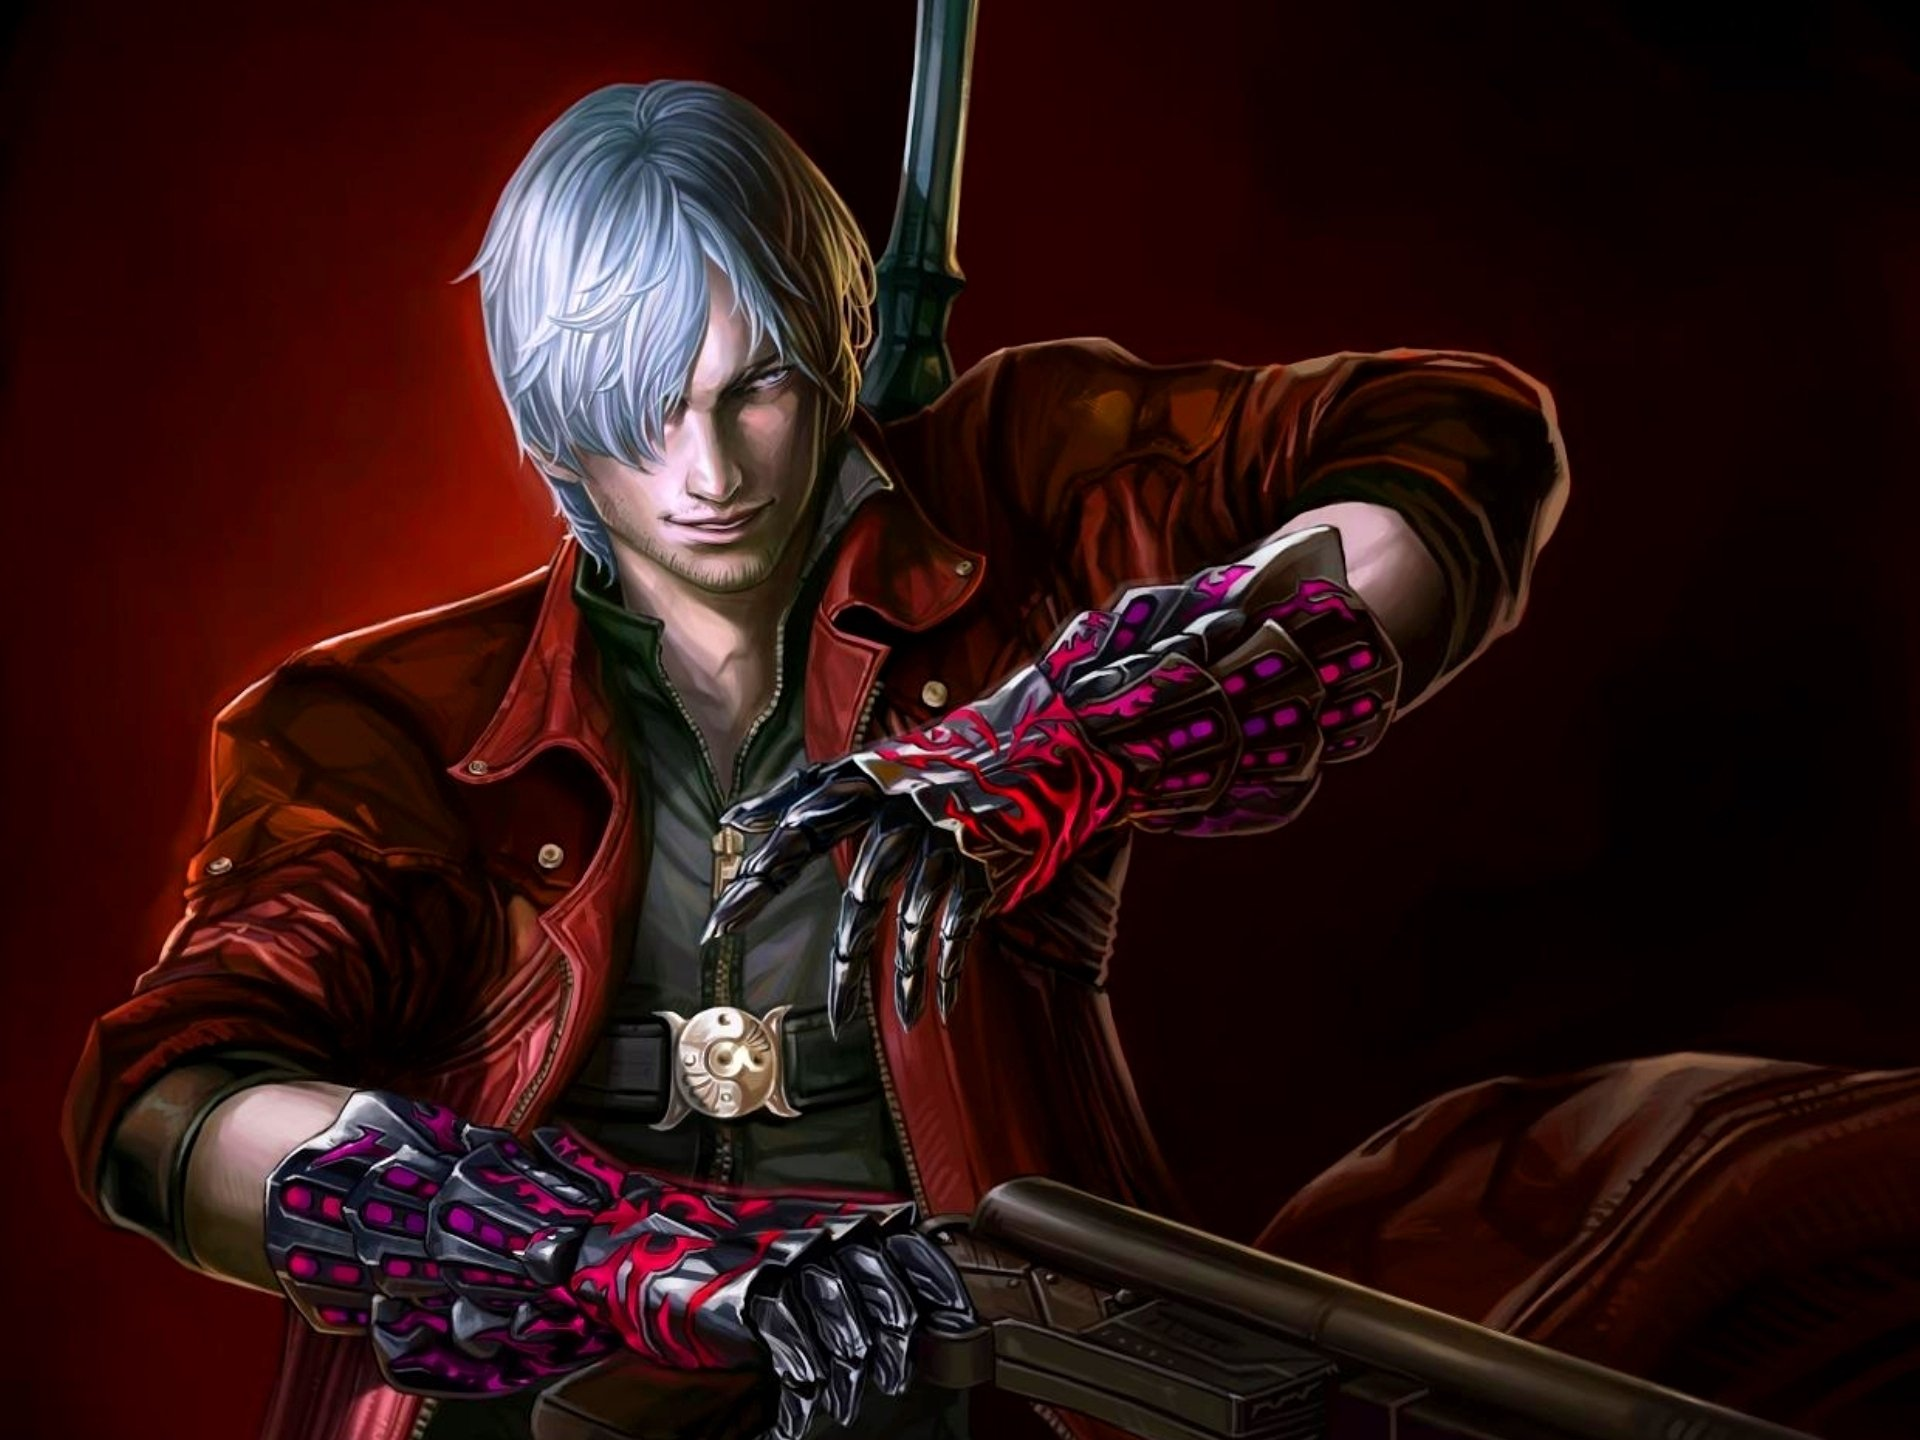 91 devil may cry hd wallpapers background images wallpaper abyss devil may cry vergil hd wallpaper background image id203459 voltagebd Images